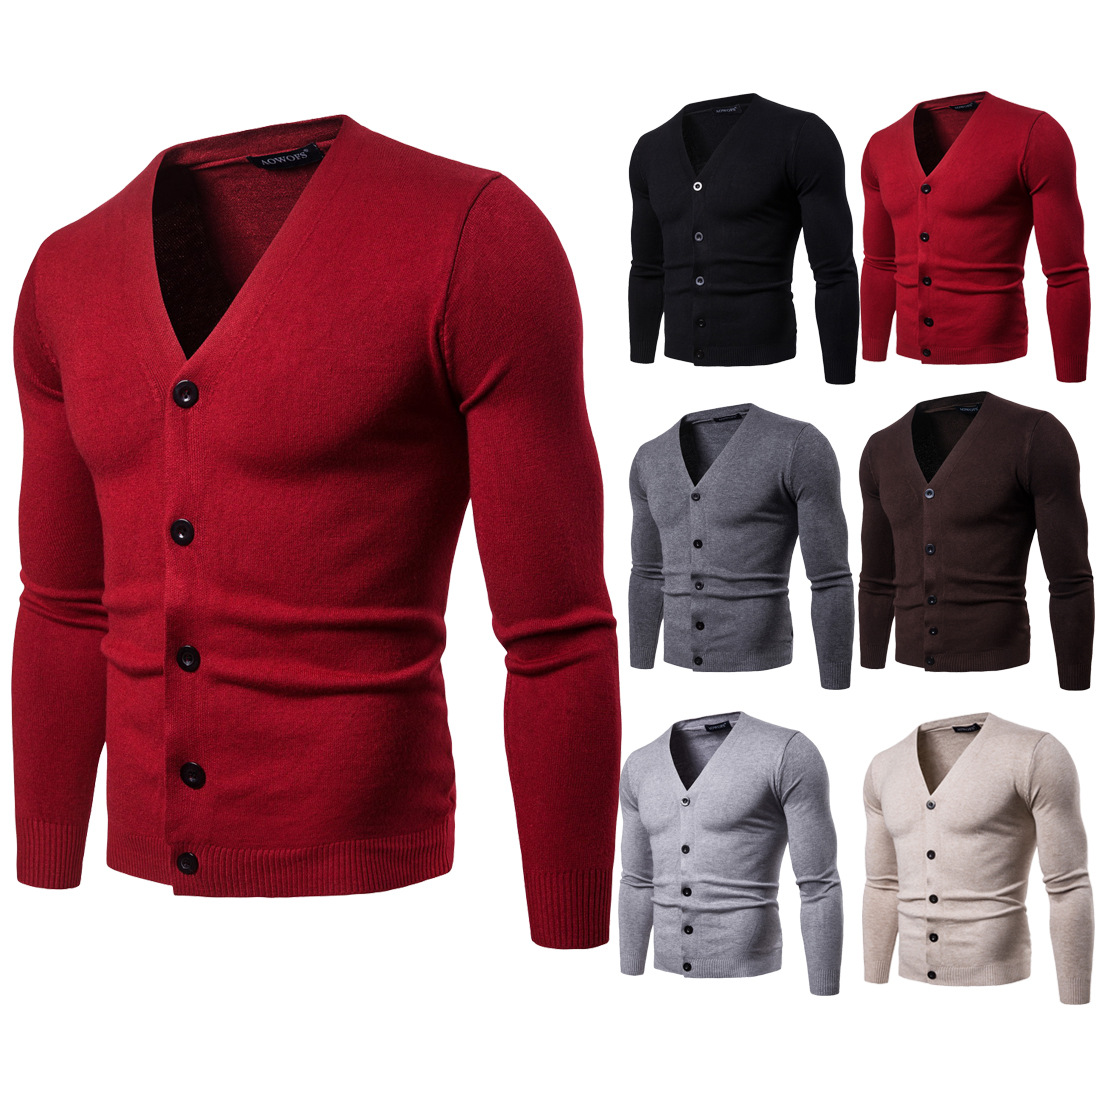 YM011 New Fashion Spring&Autumn Clothing Men Pure Knit Slim Long Sleeve V - Neck Knitted Cardigan Sweater